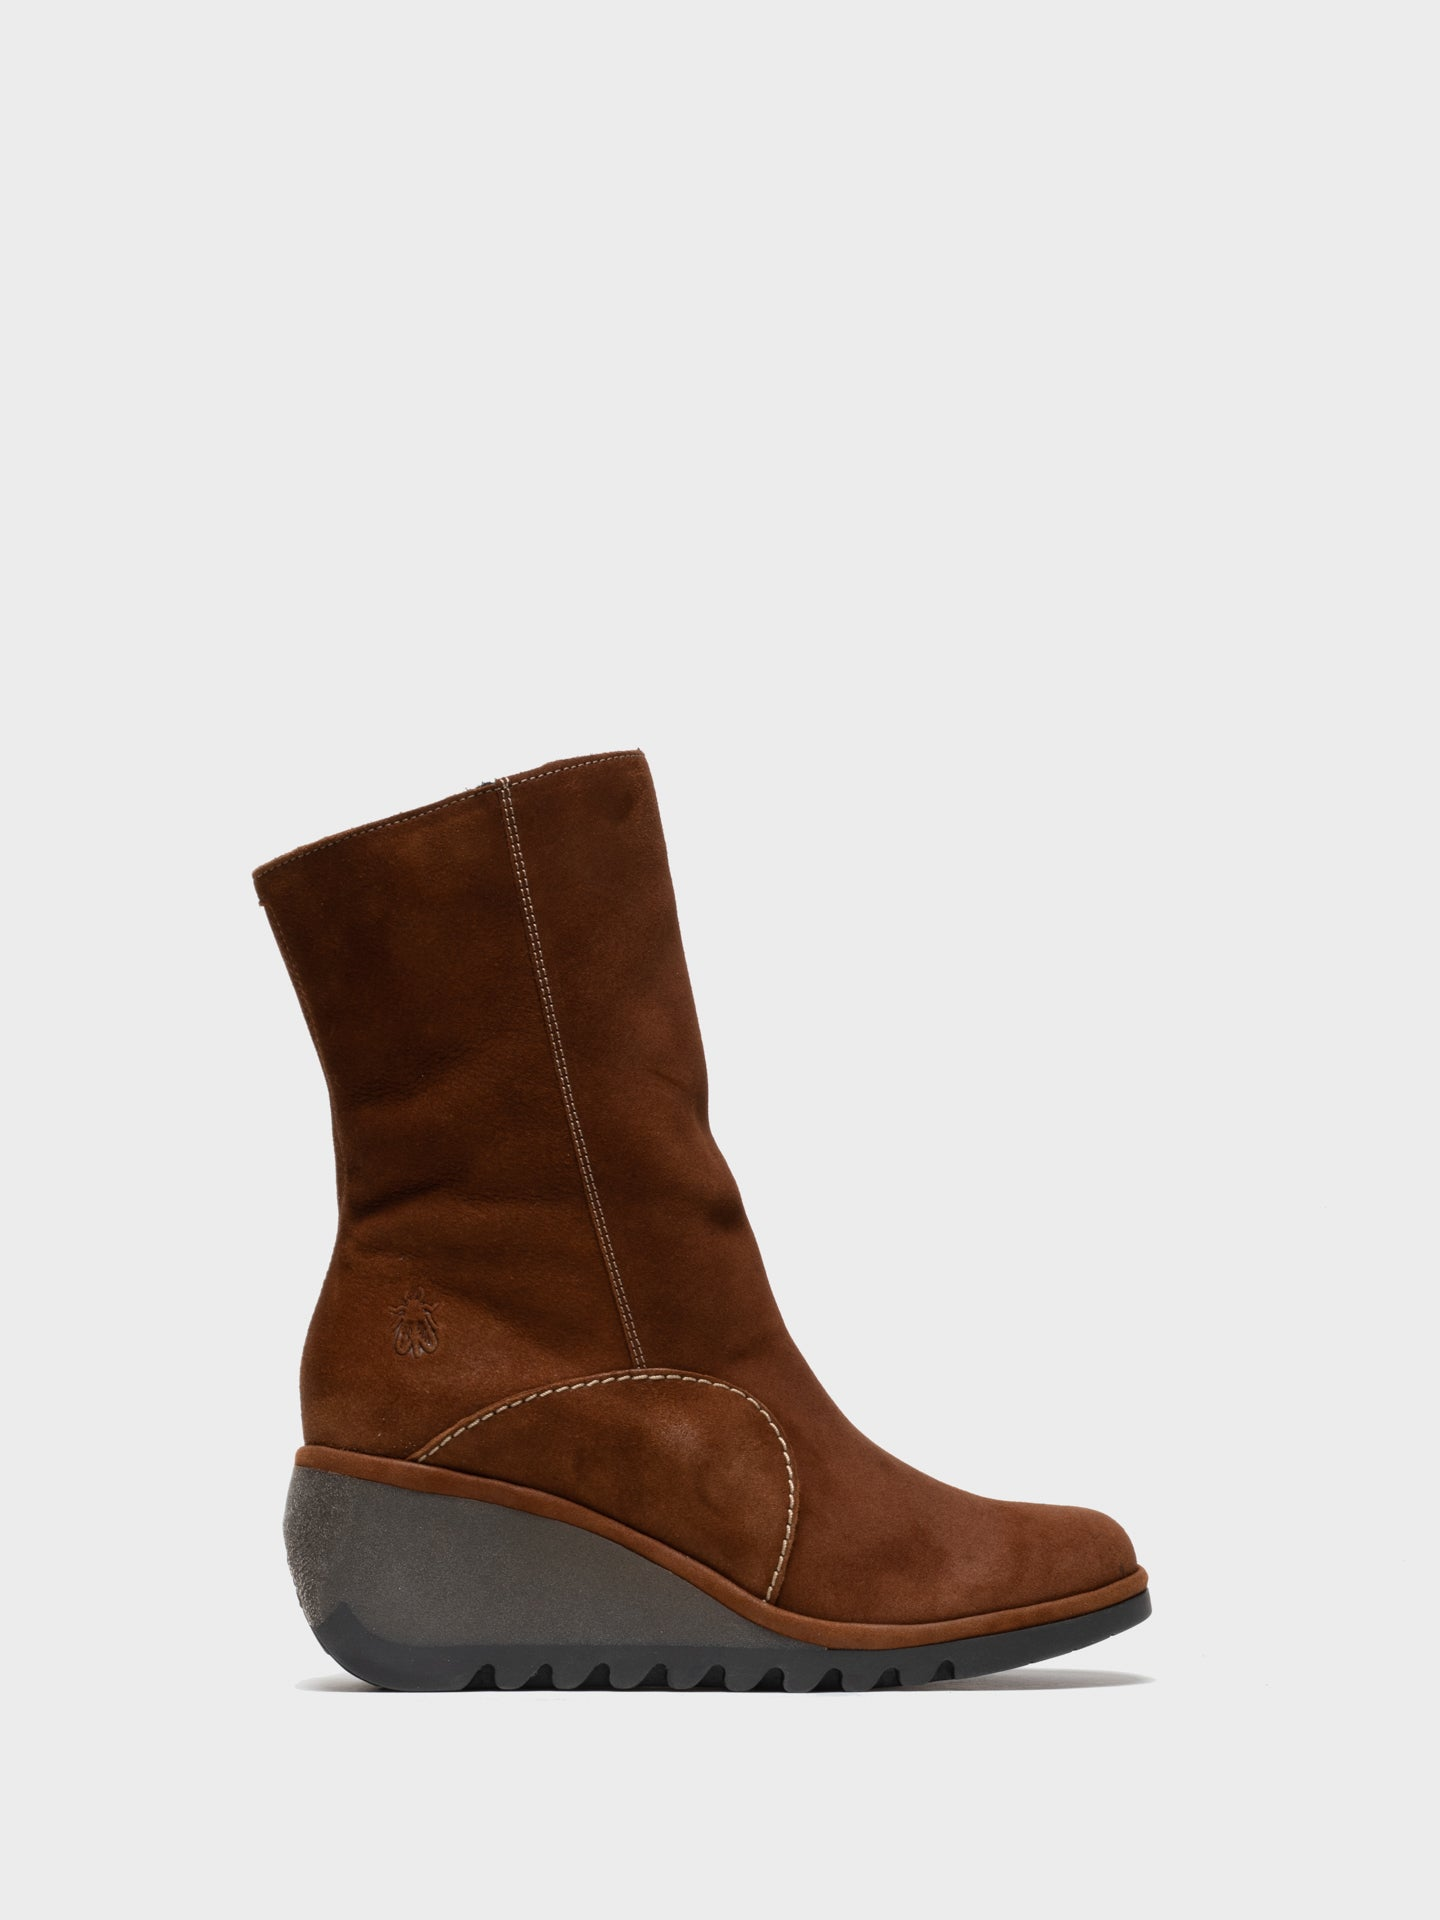 Fly London Chocolate Zip Up Ankle Boots